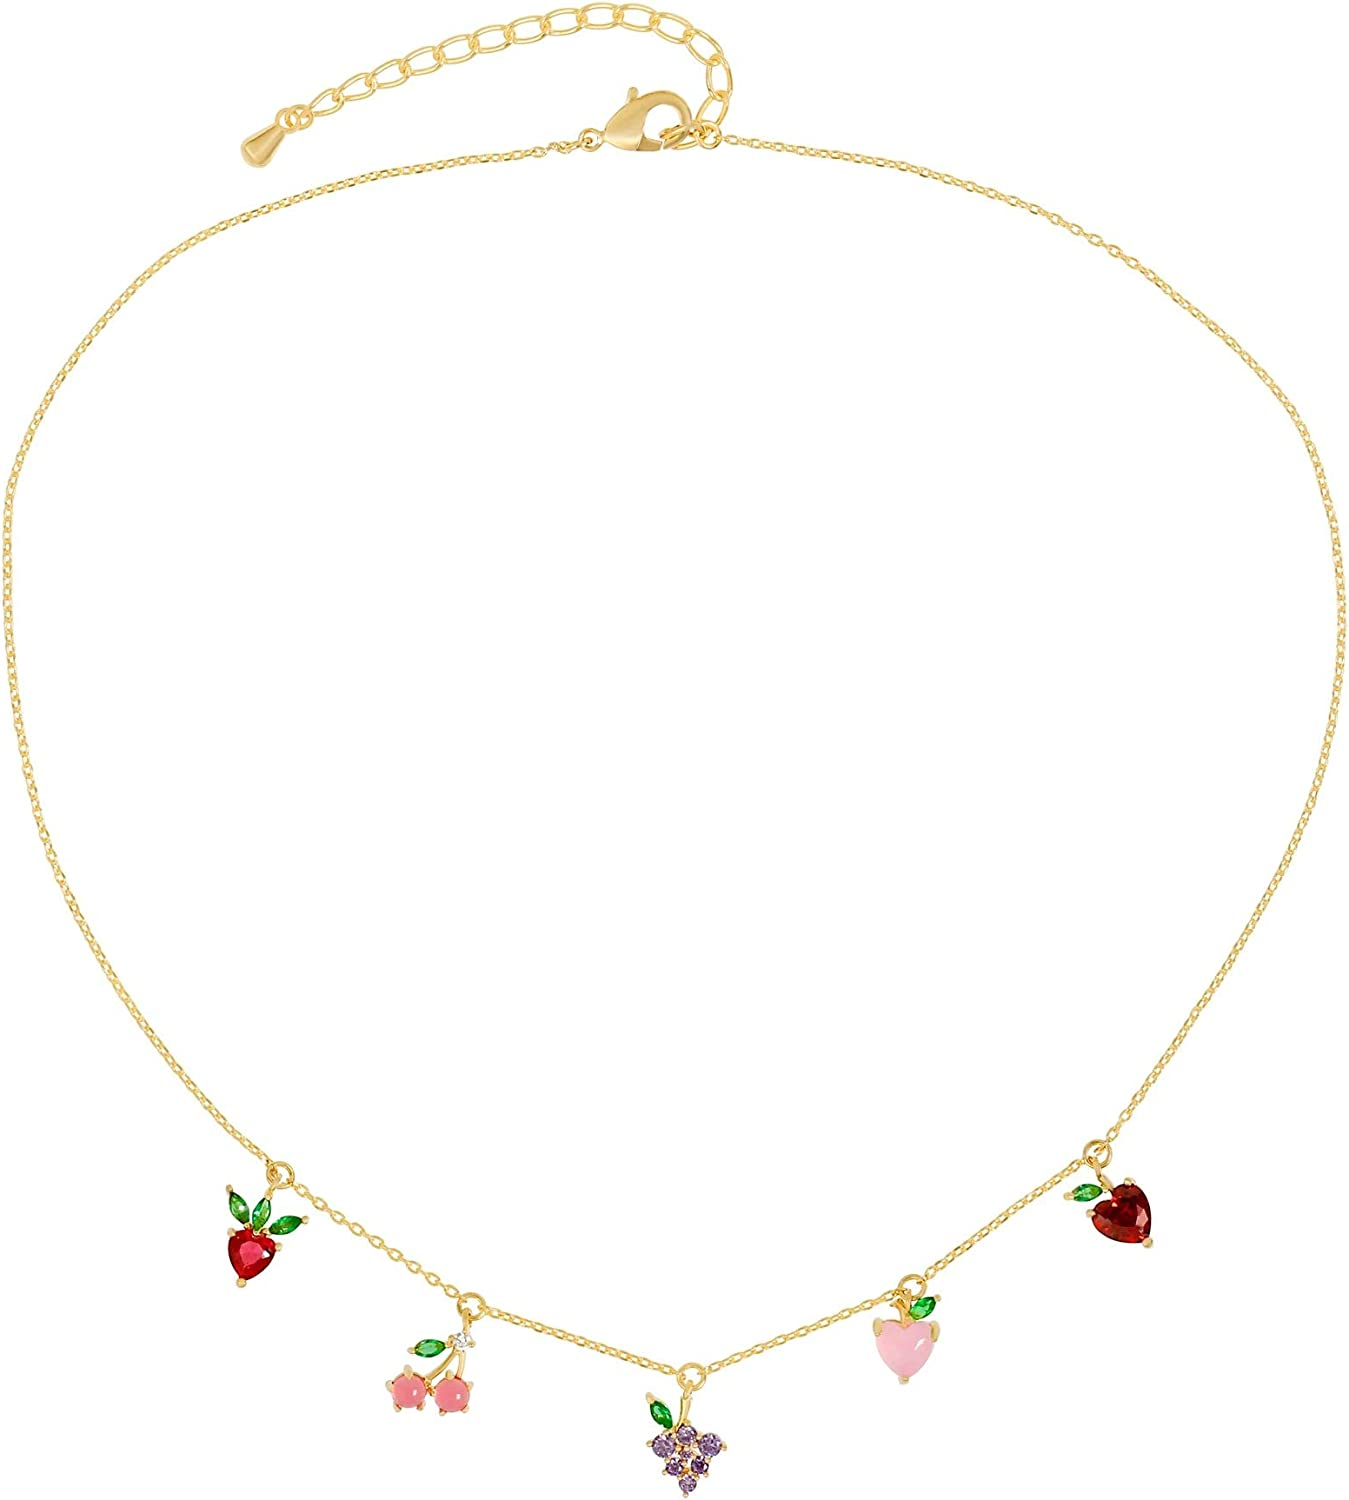 Dainty Cute Fresh Fruit Choker for Women Girls 14K Gold Plated Chain Cubic Zircon Cherry Pineapple Strawberry Colorful Crystal Pendant Necklace for Women Girls Jewelry